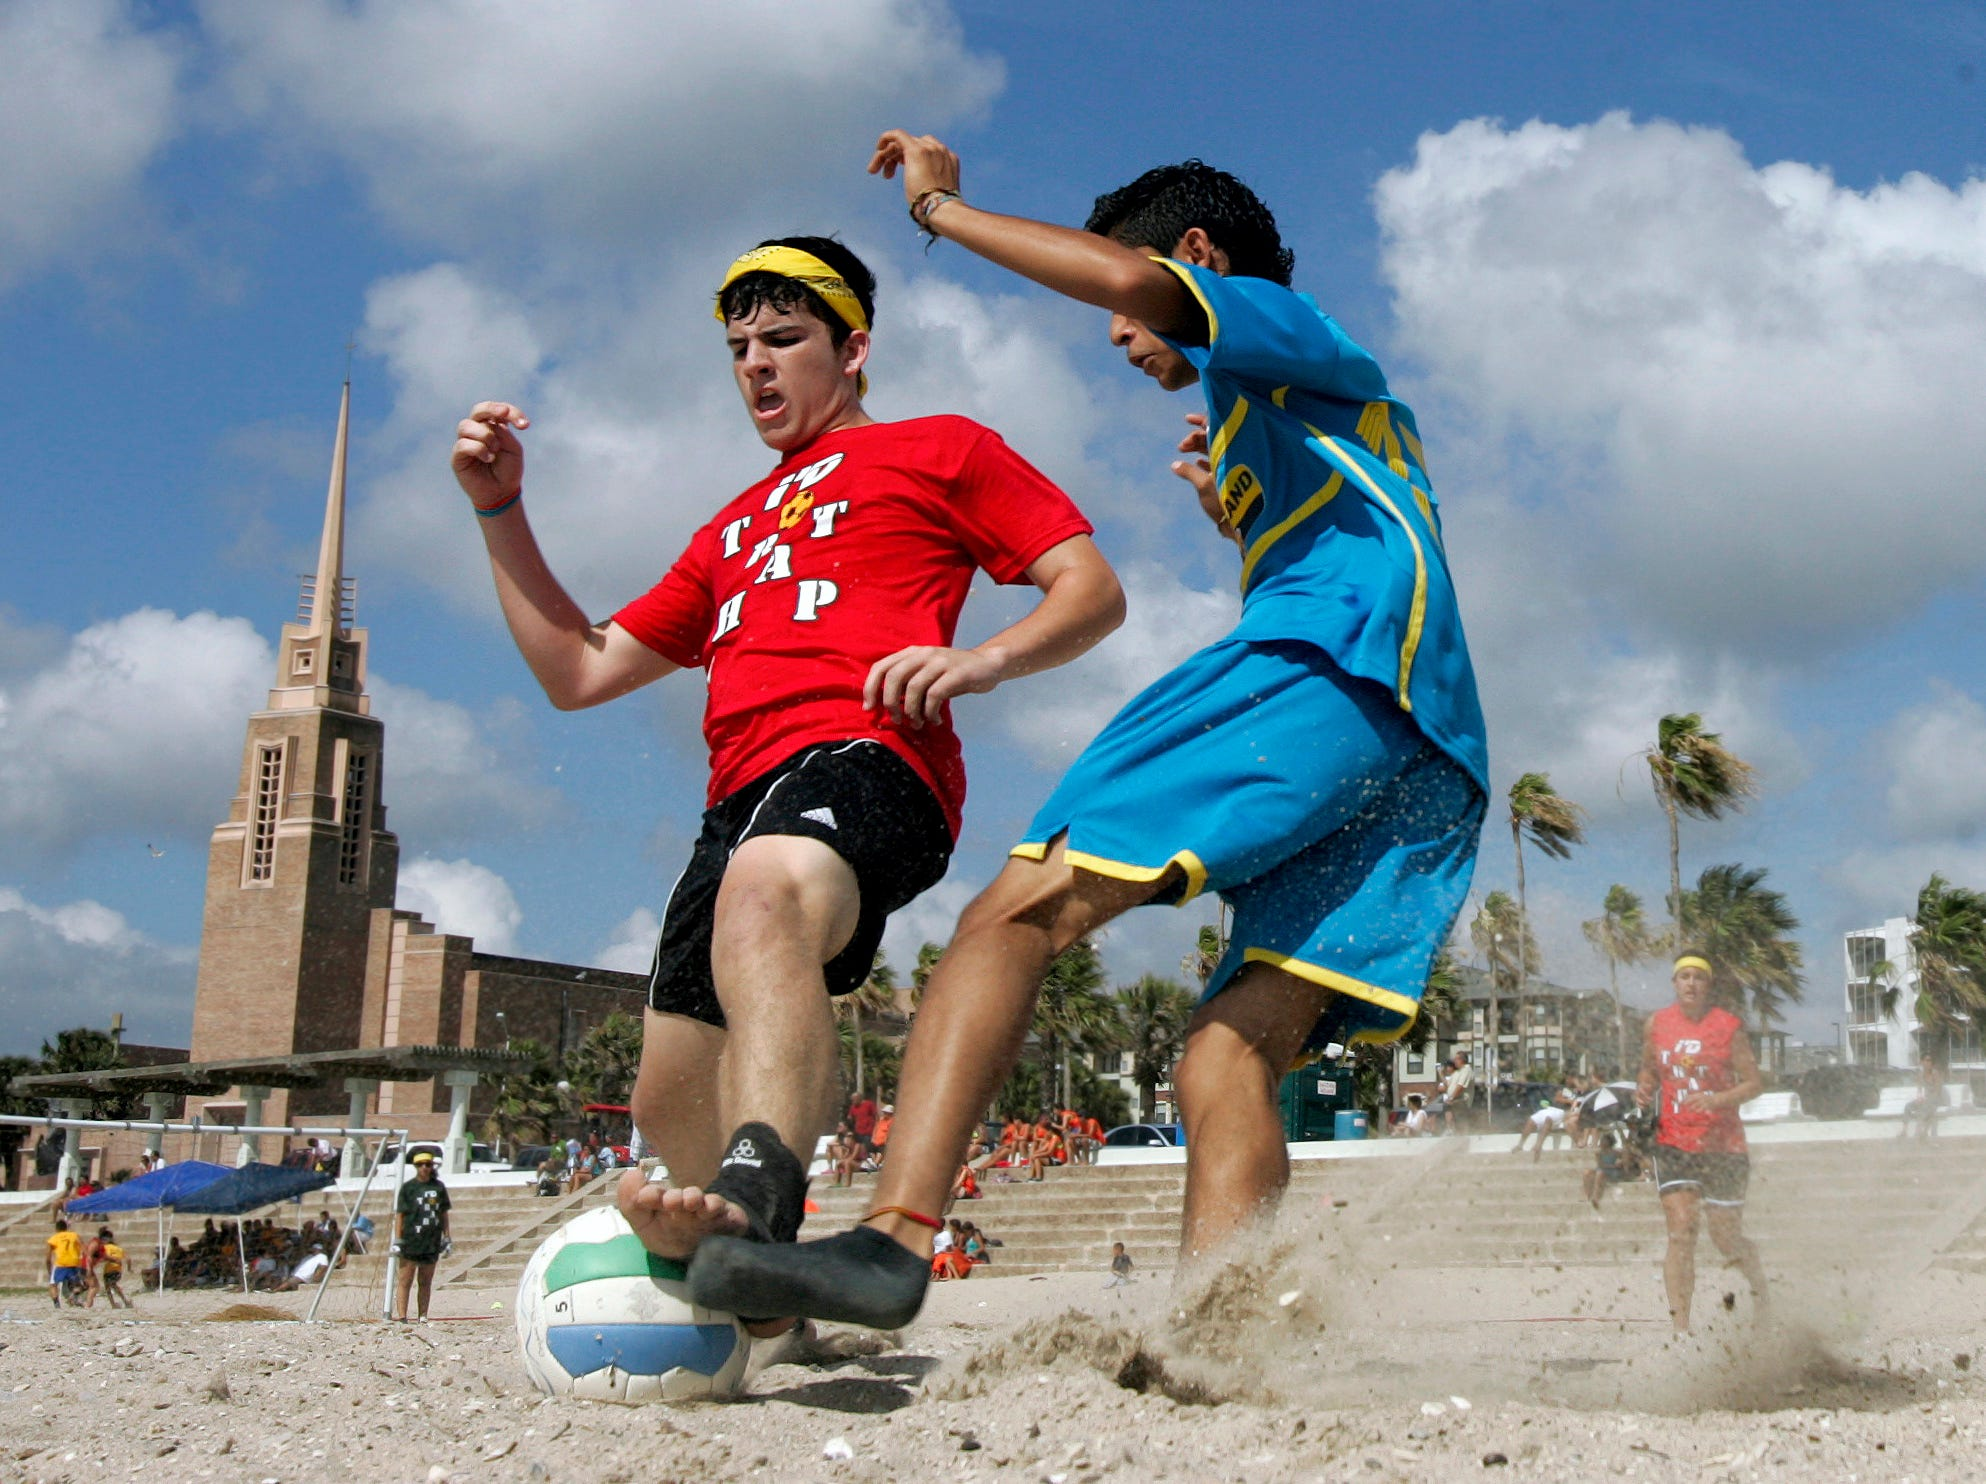 Kyle Thomson, 17 (left), fights for control of the ball with Joe Villanueva, 16, Saturday, June 19, 2010 during the Express Beach Soccer Fest on McGee Beach in downtown Corpus Christi. Participants aren't allowed to wear hard shoes, but many participants wear socks, wraps of aqua socks for traction and support.